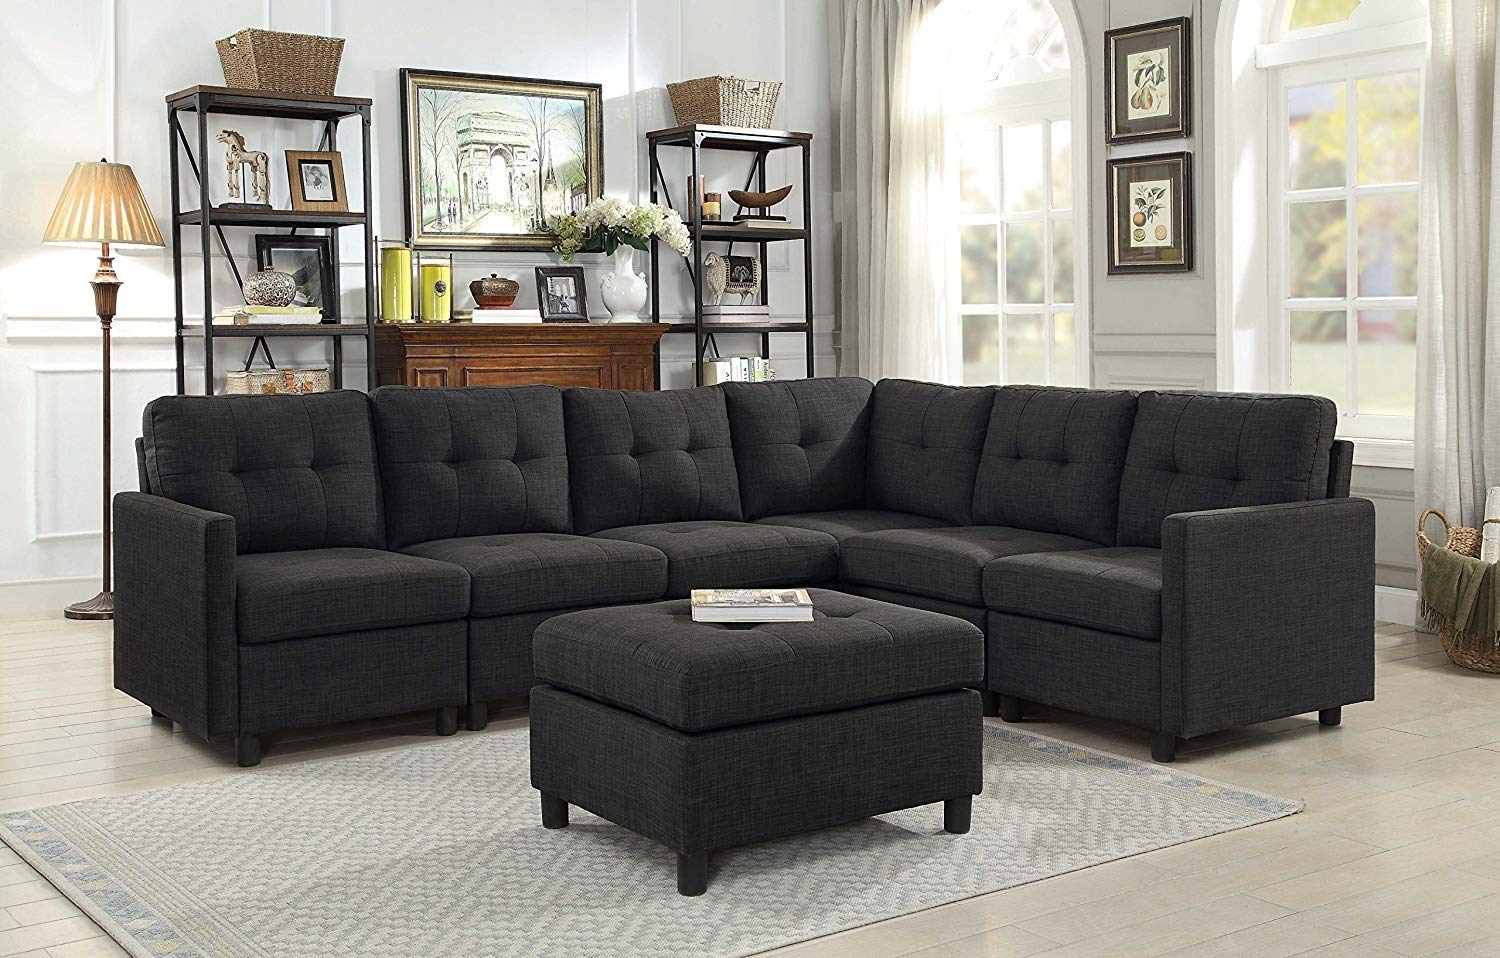 Great Ideas For Sectional Sofas Home Mum